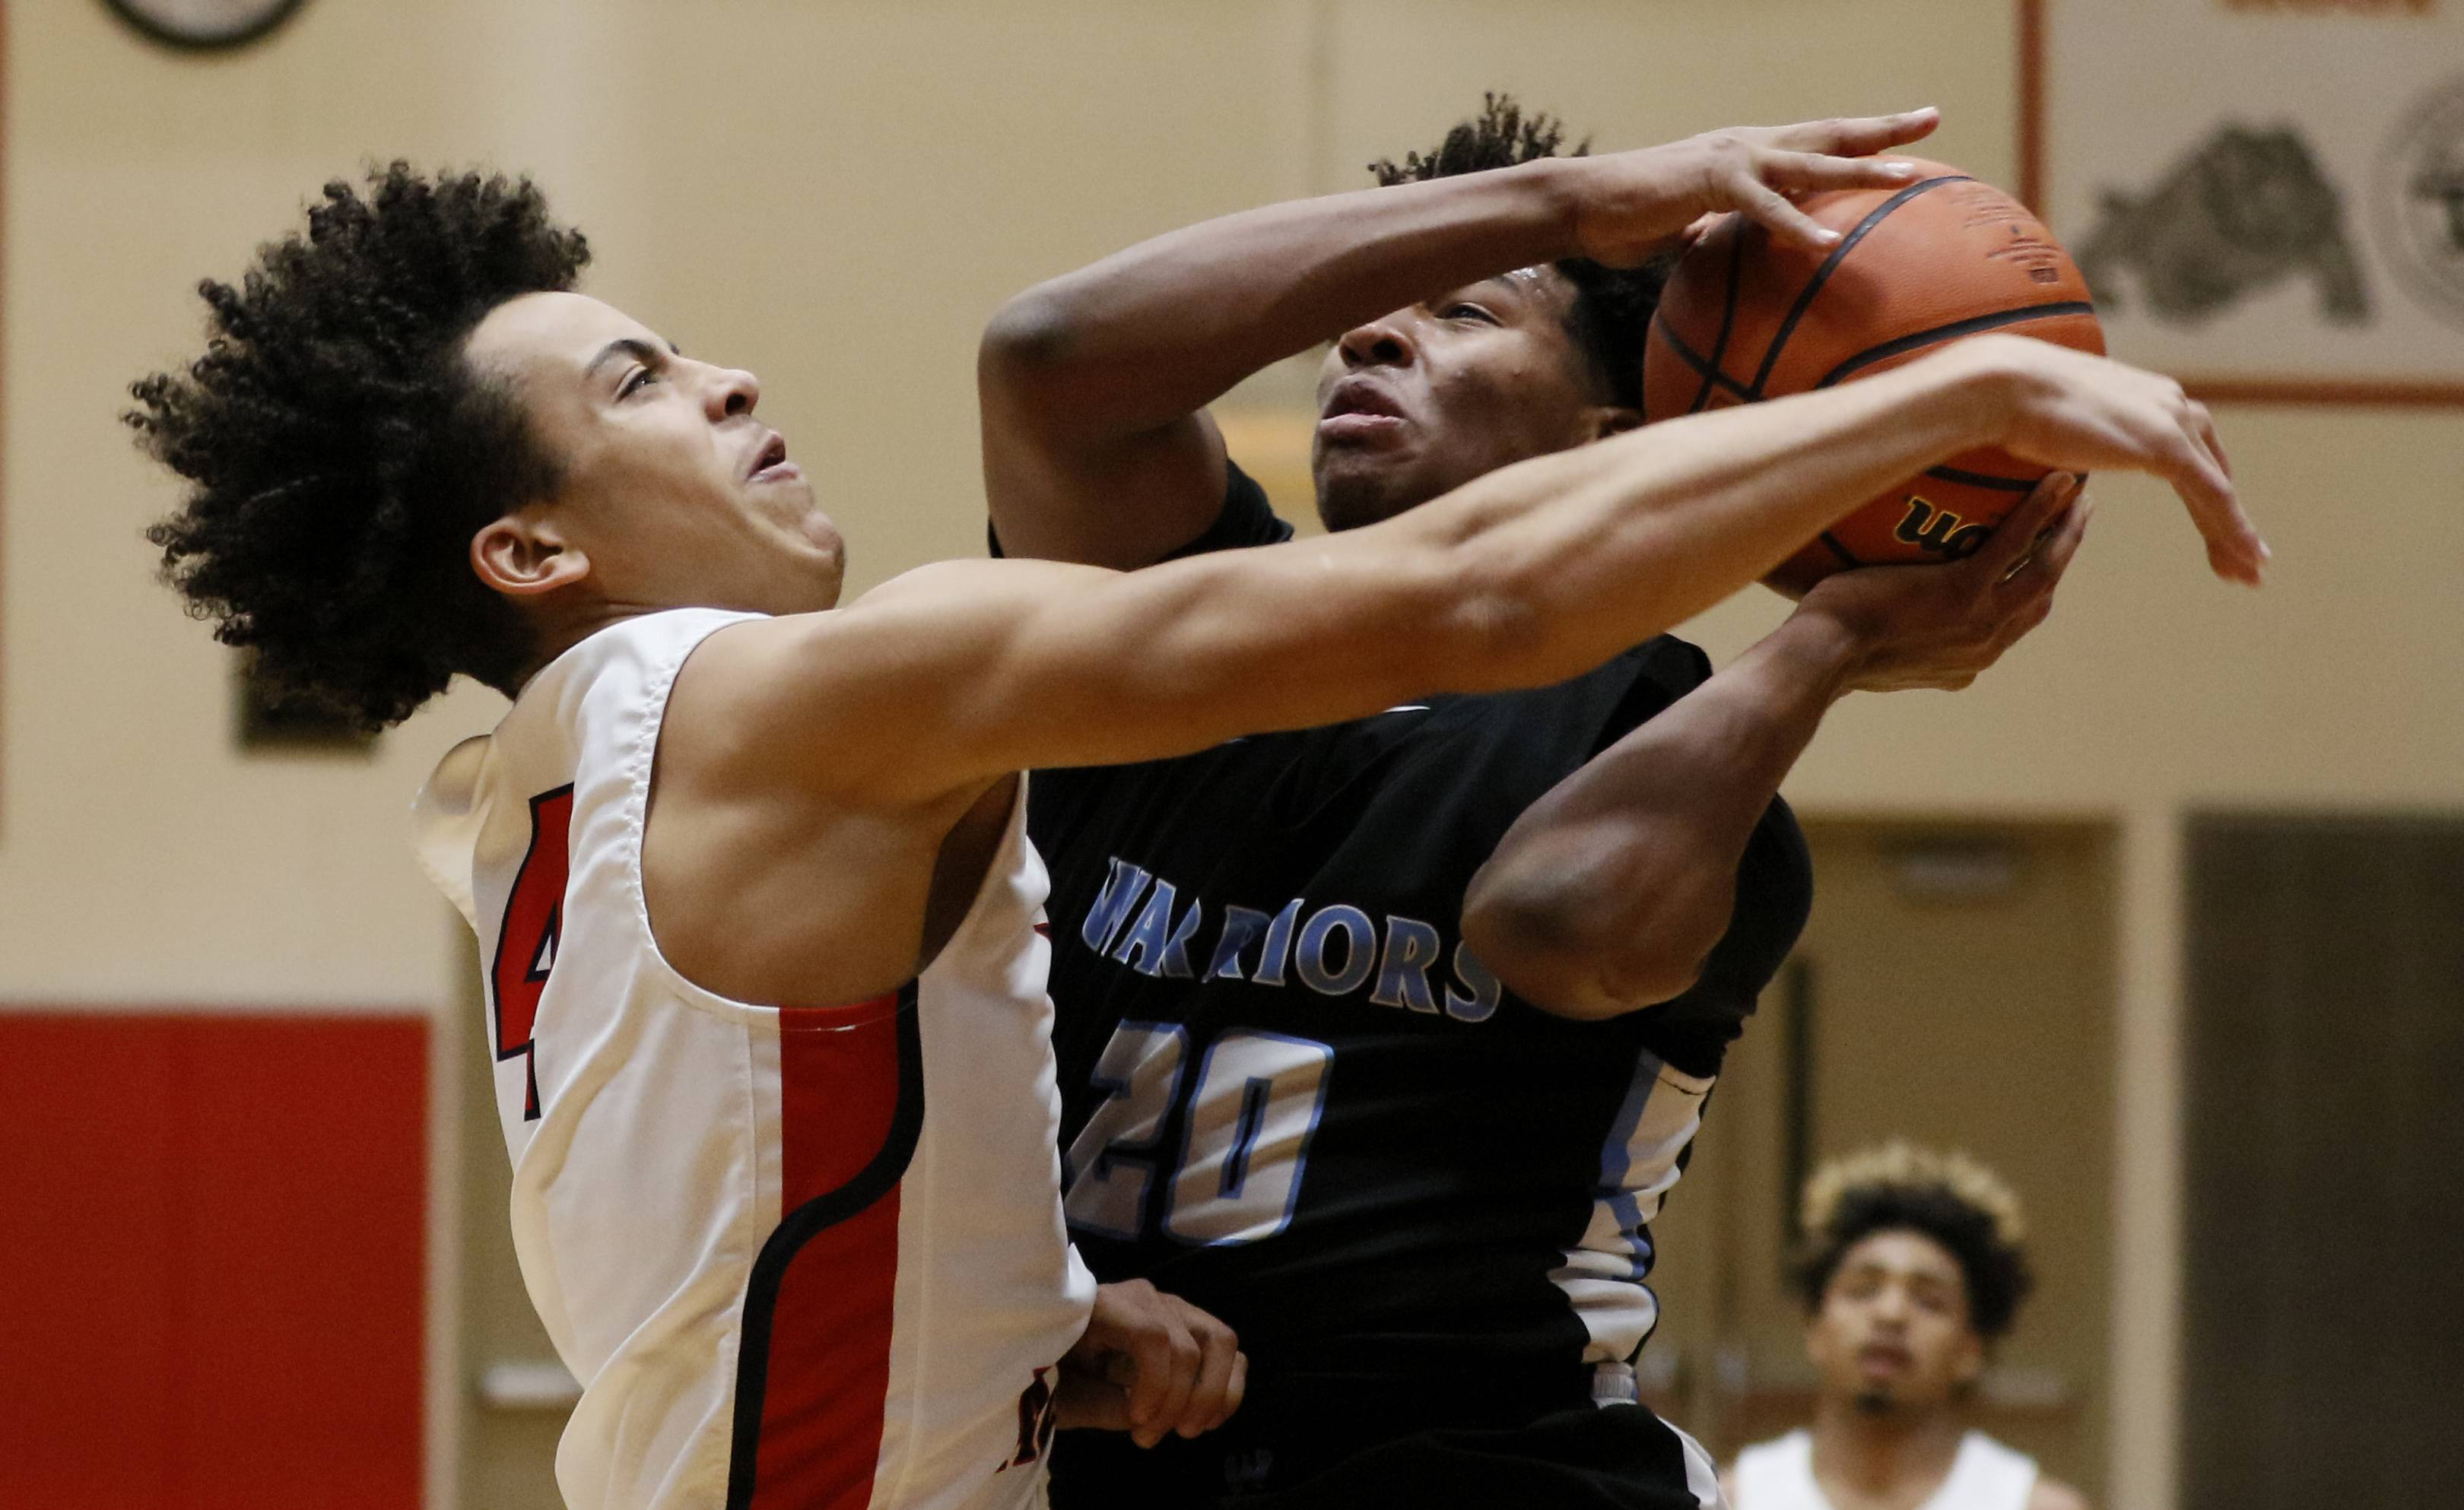 West Aurora's Moshe Rogers, left, defends the lane against Willowbrook's Matthew Myers Saturday during the 25th annual Jim & Sylvia Roberts Night of Hoops boys basketball game at Batavia High School.